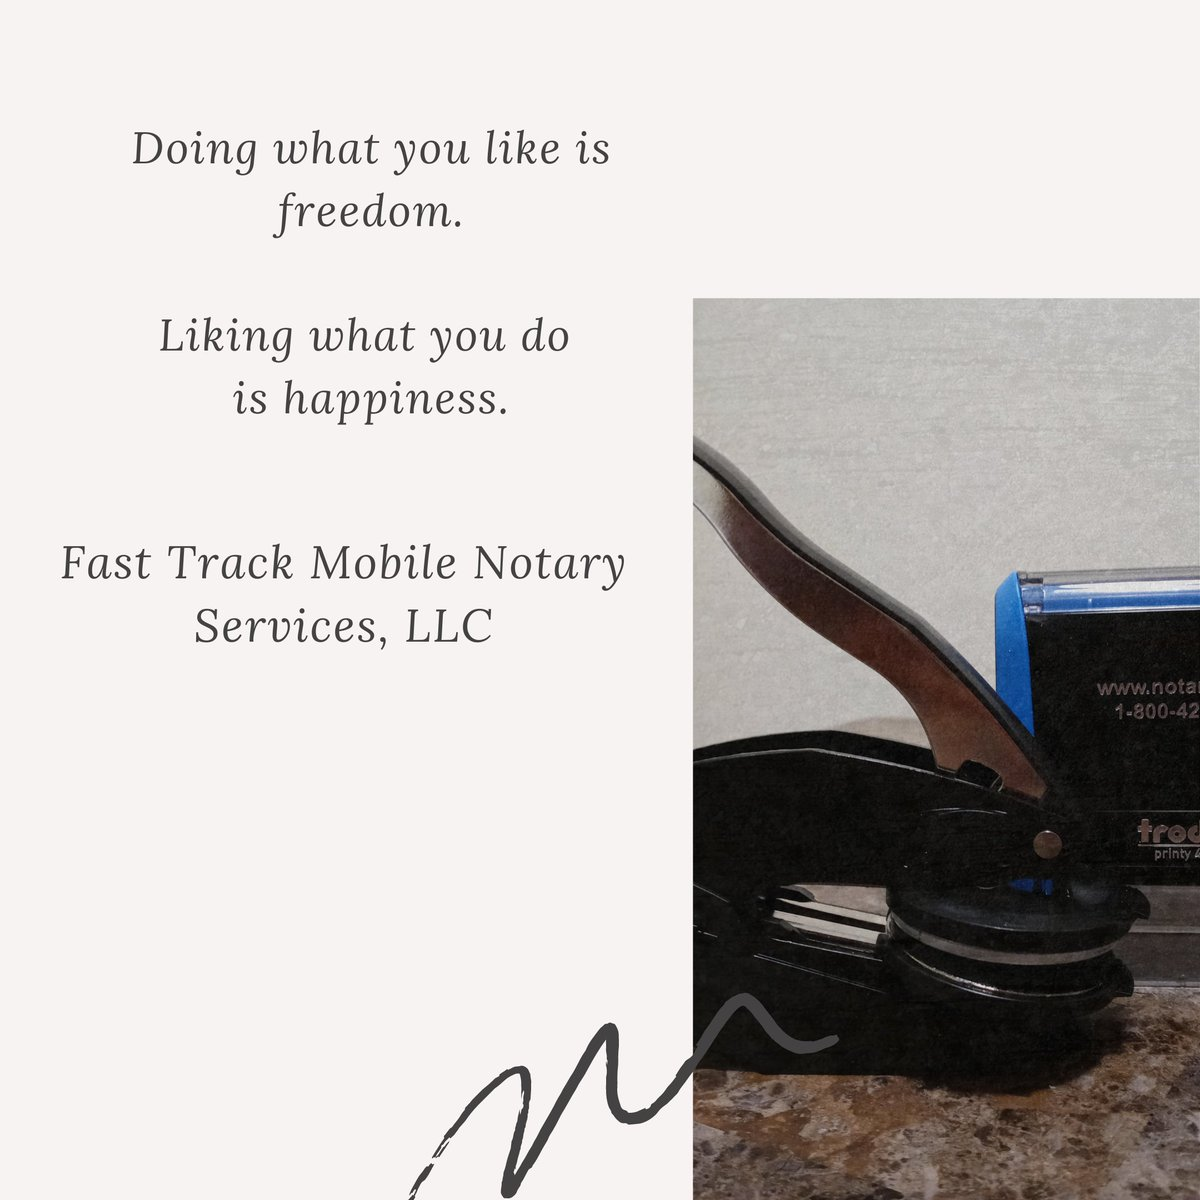 Being a Notary has made me happy because it gave me the opportunity to become an entrepreneur! #happy #beinghappy #entrepreneur #htown #houstonnotarypublic #houstontx #HoustonMobileNotary #businessowner #fasttrackmobilenotaryservicesllc